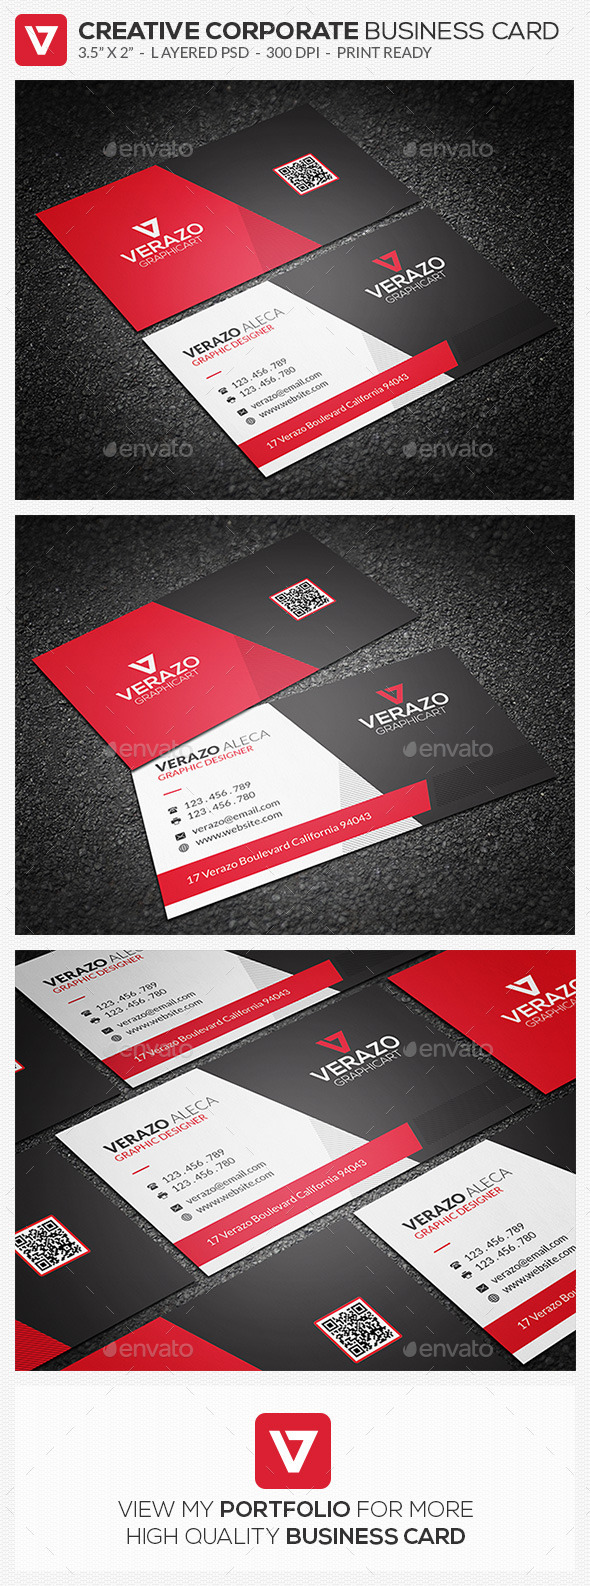 Creative & Sleek Corporate Business Card 67 - Corporate Business Cards